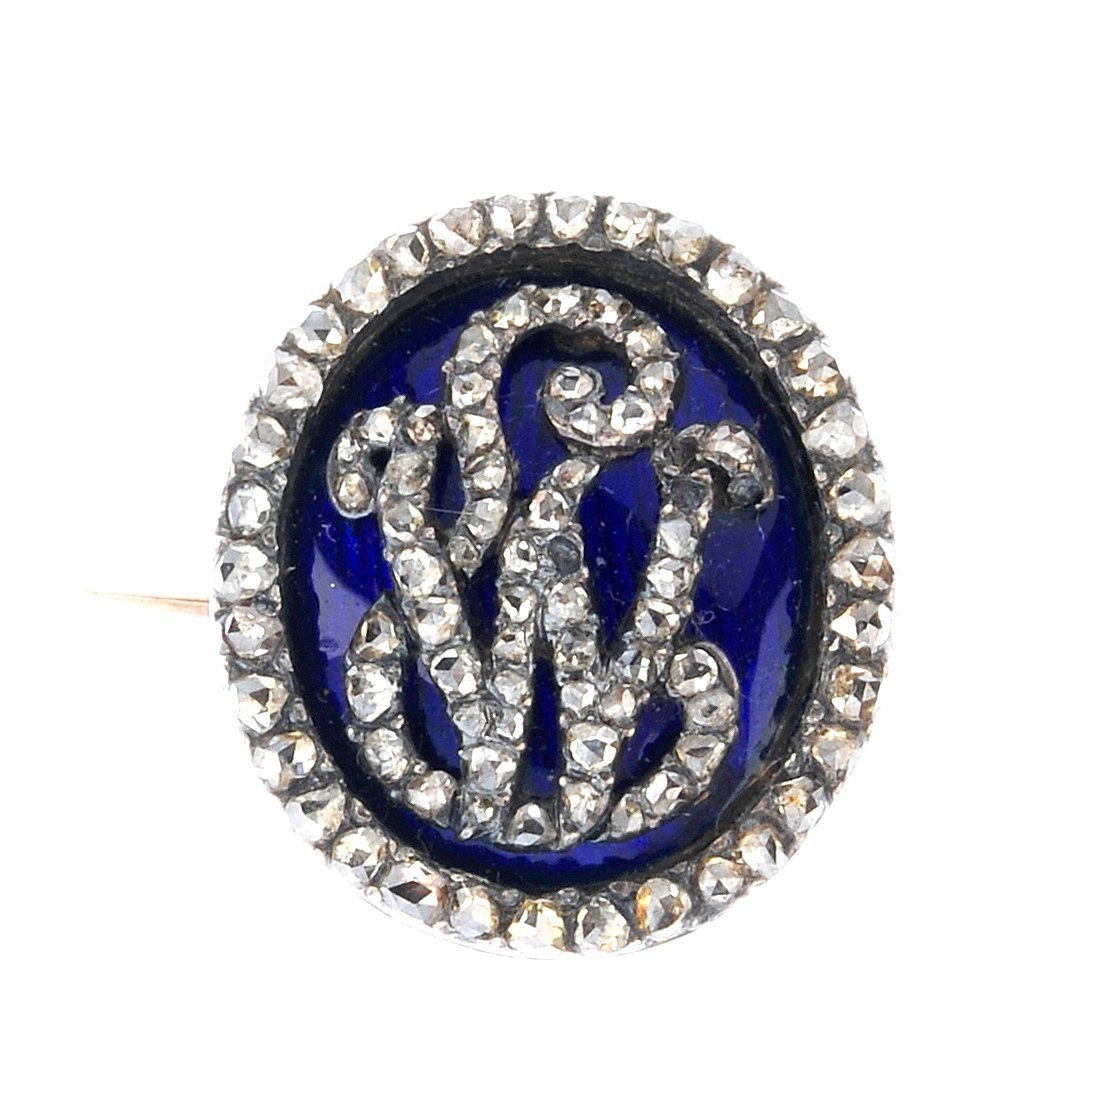 "<a href=""https://www.fellows.co.uk/2104-lot-386-A-late-Georgian-diamond-and-enamel-monogram-brooch?utm_source=Ageless%20Heirlooms&utm_medium=blog&utm_campaign=Ageless%20Heirlooms%20Vintage&utm_content=Blog%20and%20social"">LOT 386</a>"